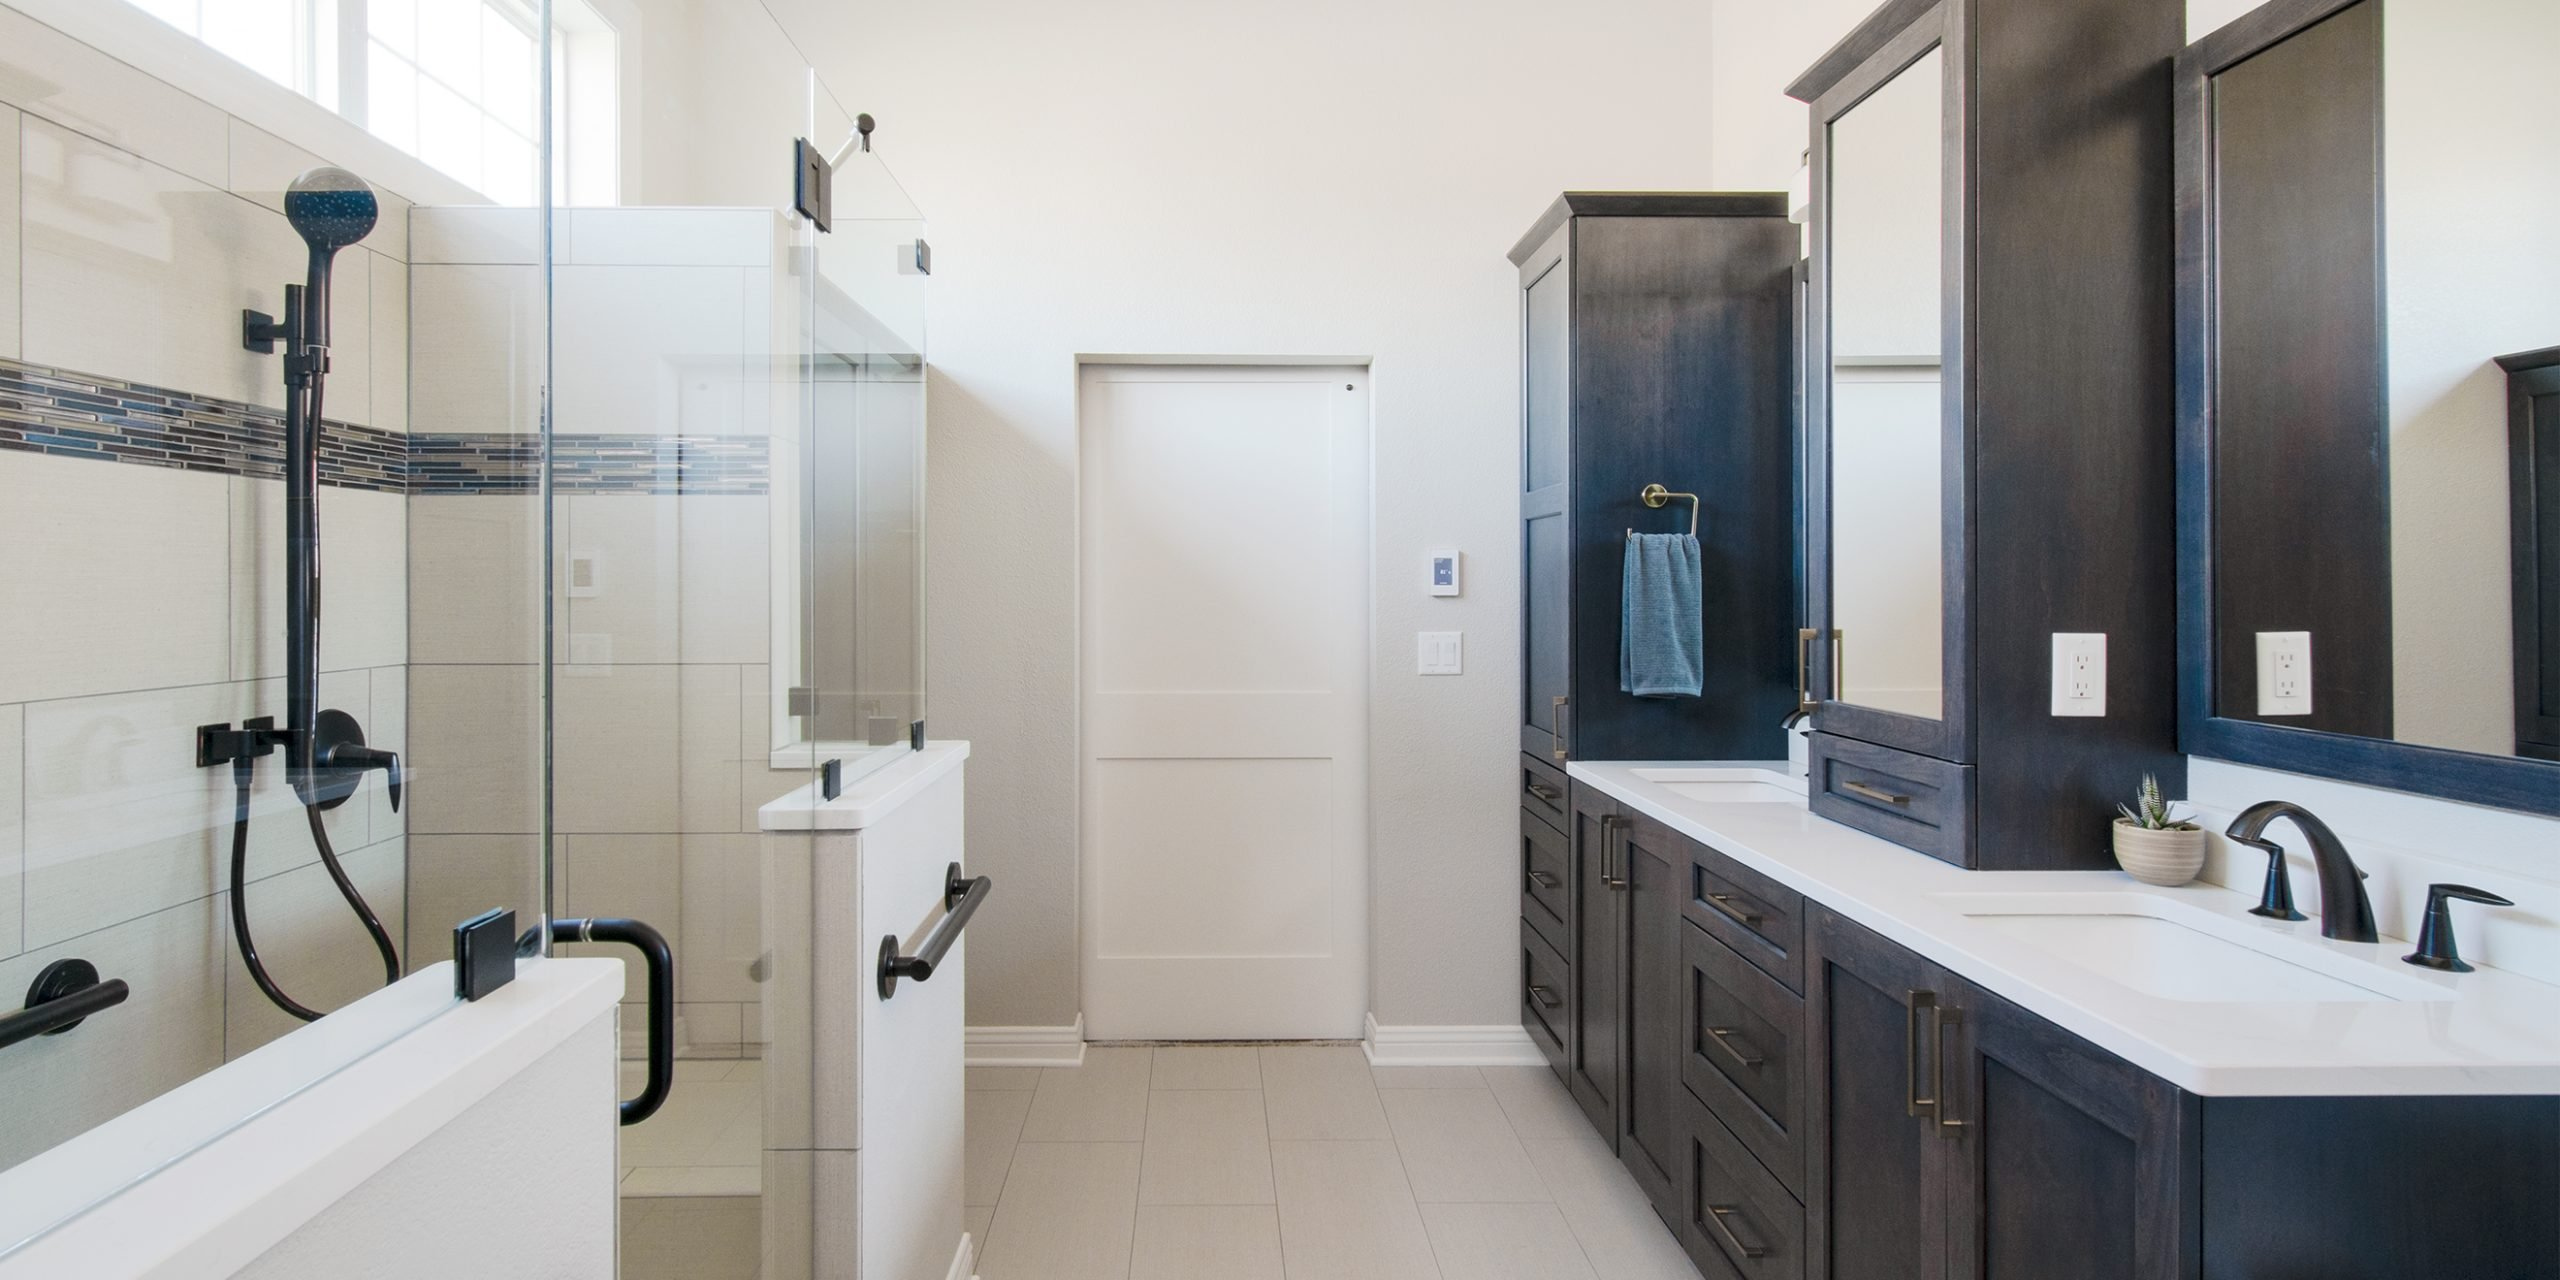 Accessible Bathroom for Aging in Place